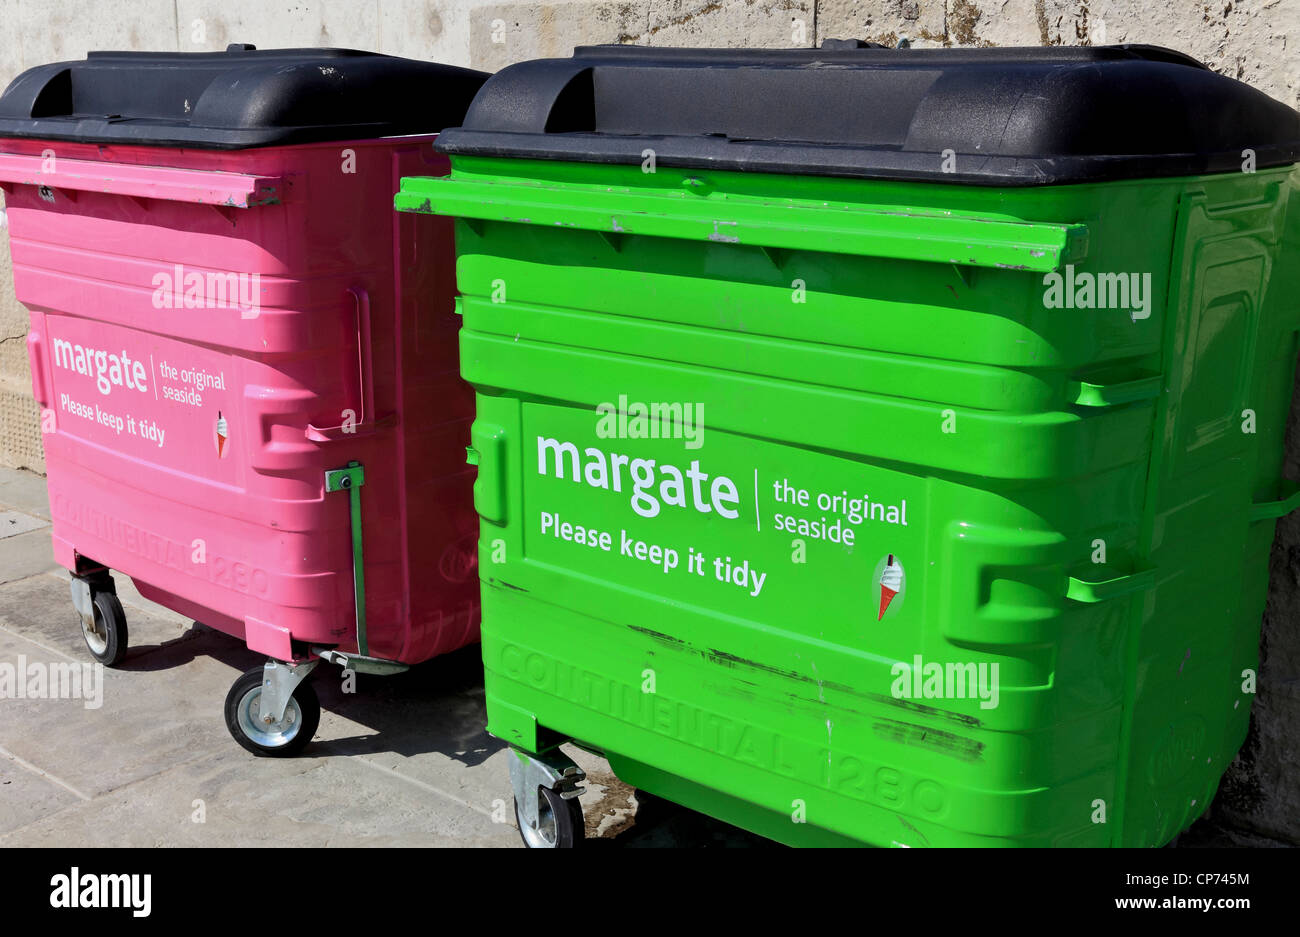 3863. Rubbish Bins, Margate, Kent, UK - Stock Image